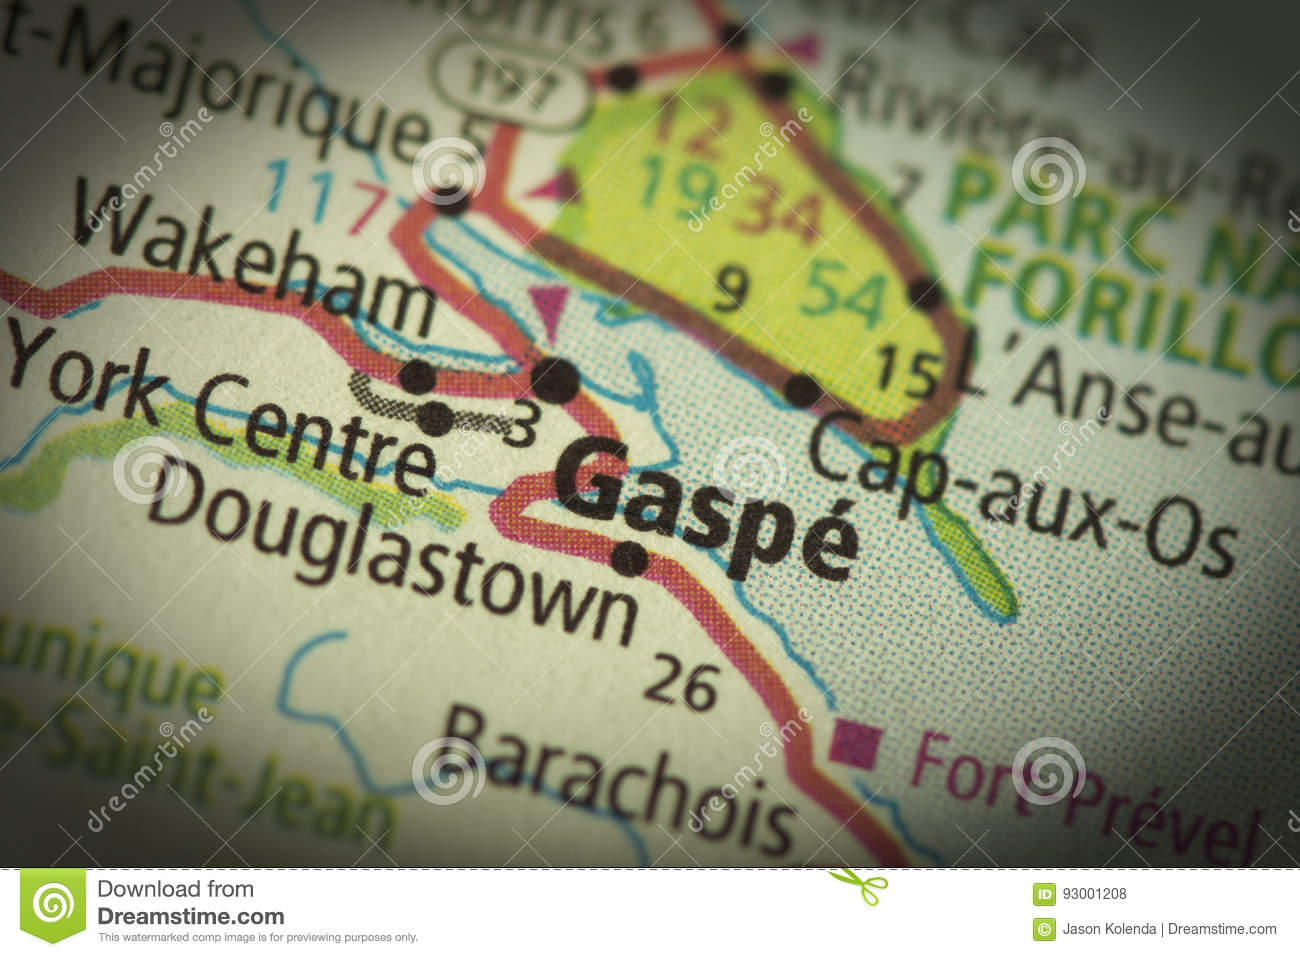 Gaspe Canada Map.Gaspe Quebec On Map Stock Photo Image Of Quebec Political 93001208